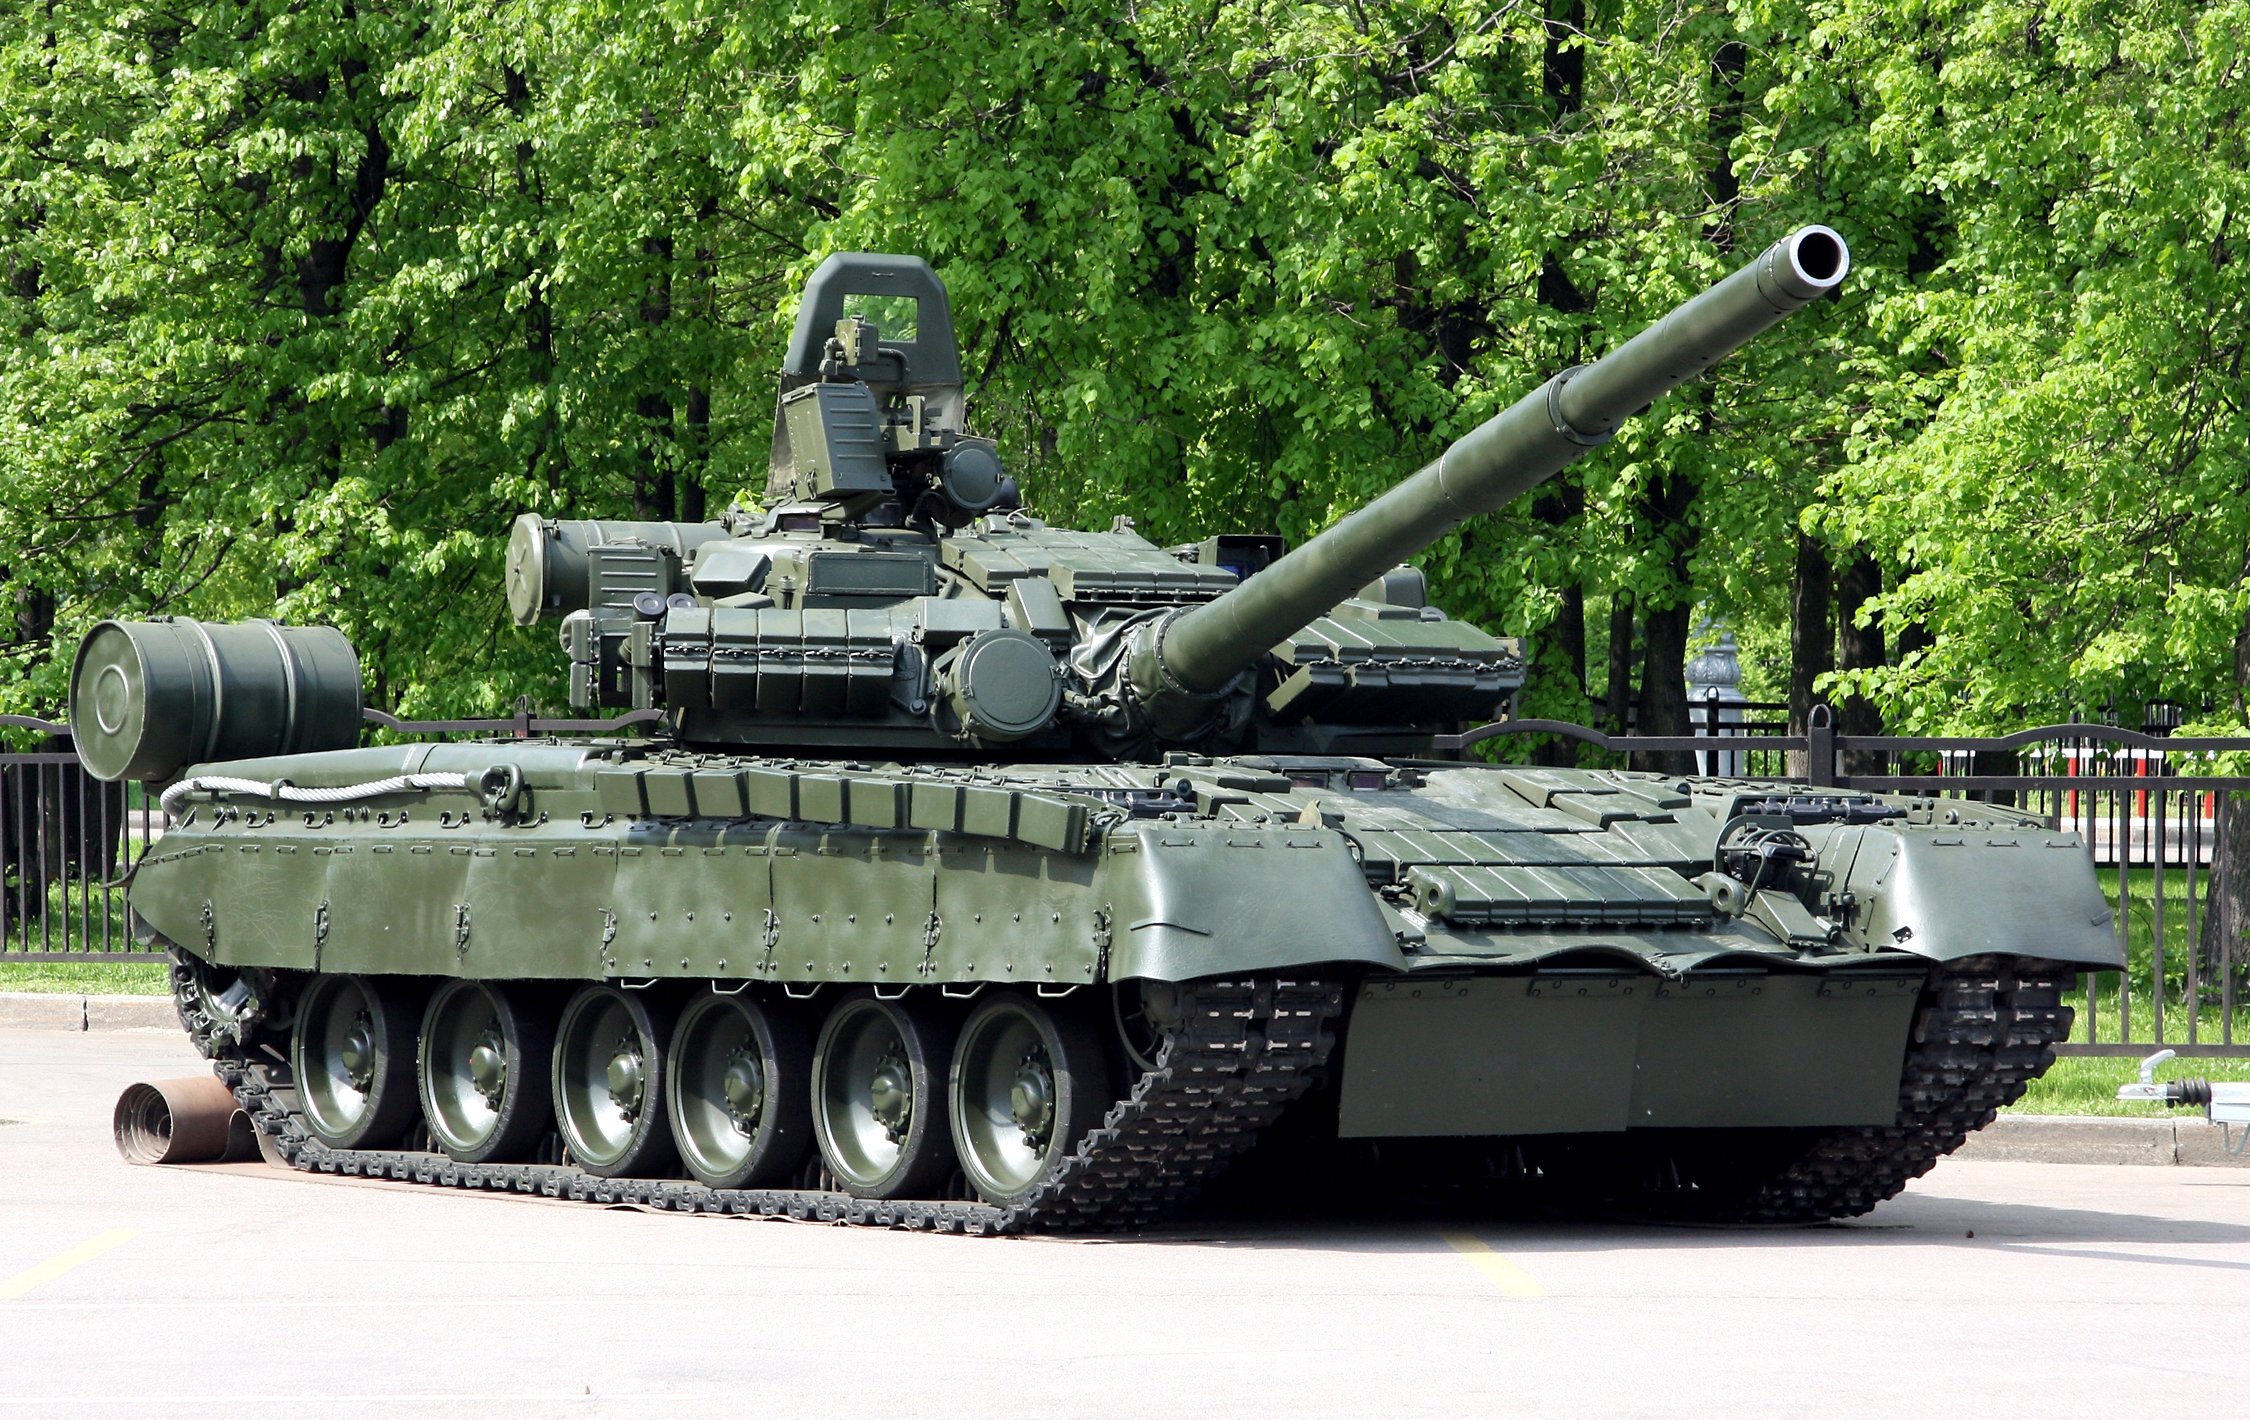 http://upload.wikimedia.org/wikipedia/commons/a/a8/Russian_T-80BV.jpg?uselang=ru